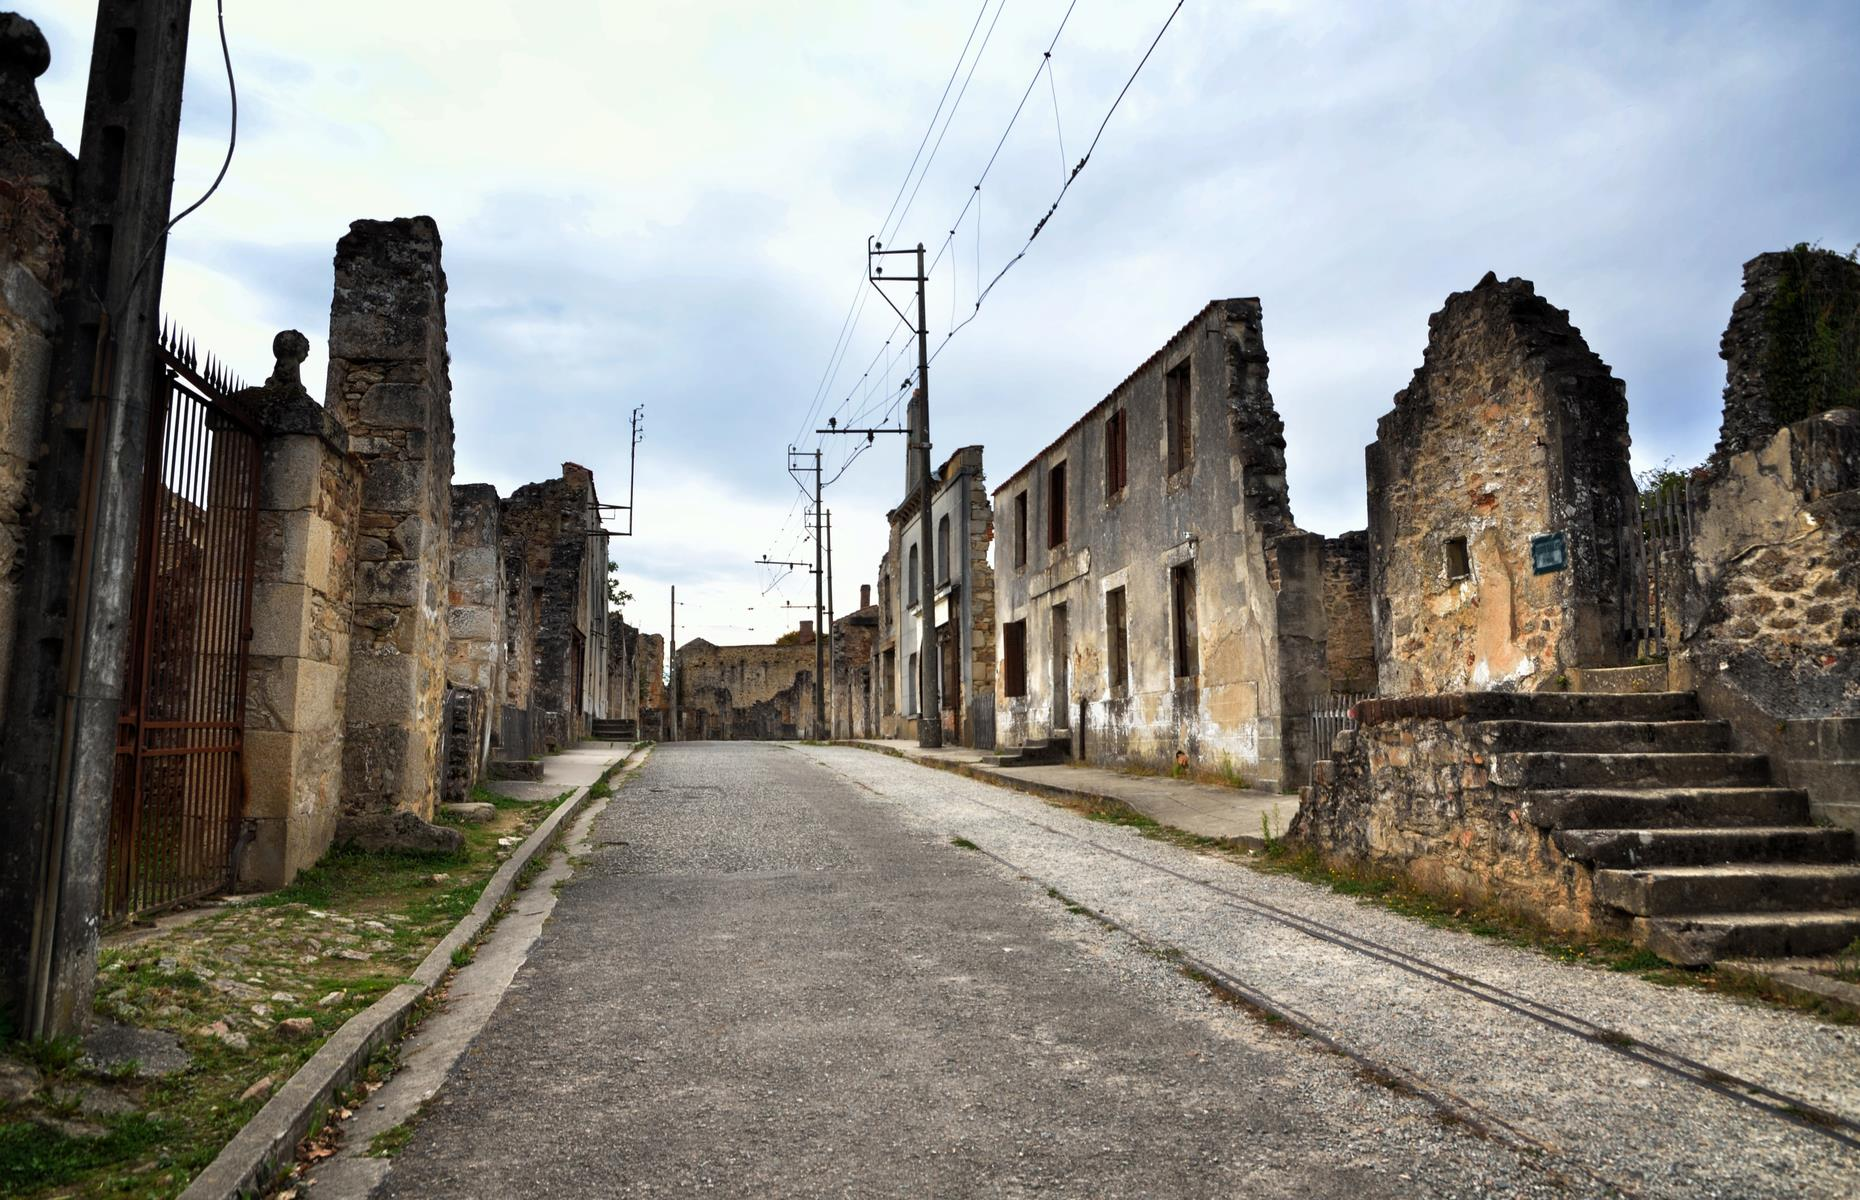 Slide 41 of 51: Since its destruction by the Nazis during the Second World War, this site in central France has been left untouched as a gut-wrenching reminder. On 10 June 1944, 642 inhabitants of the village Oradour-sur-Glane were shot or burned alive by the German forces.